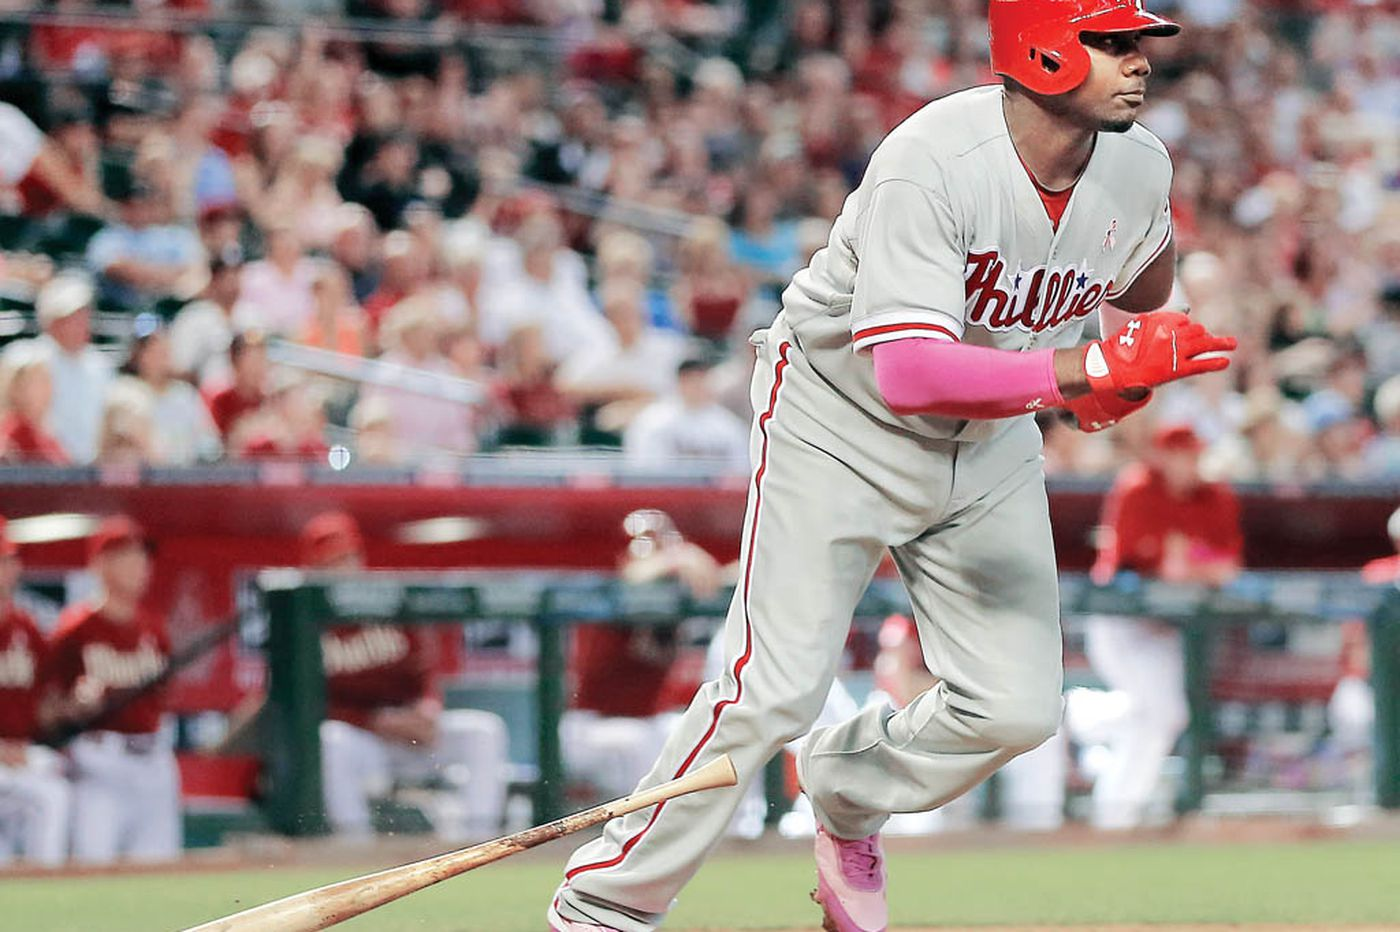 Phils' Howard answers critic with winning hit